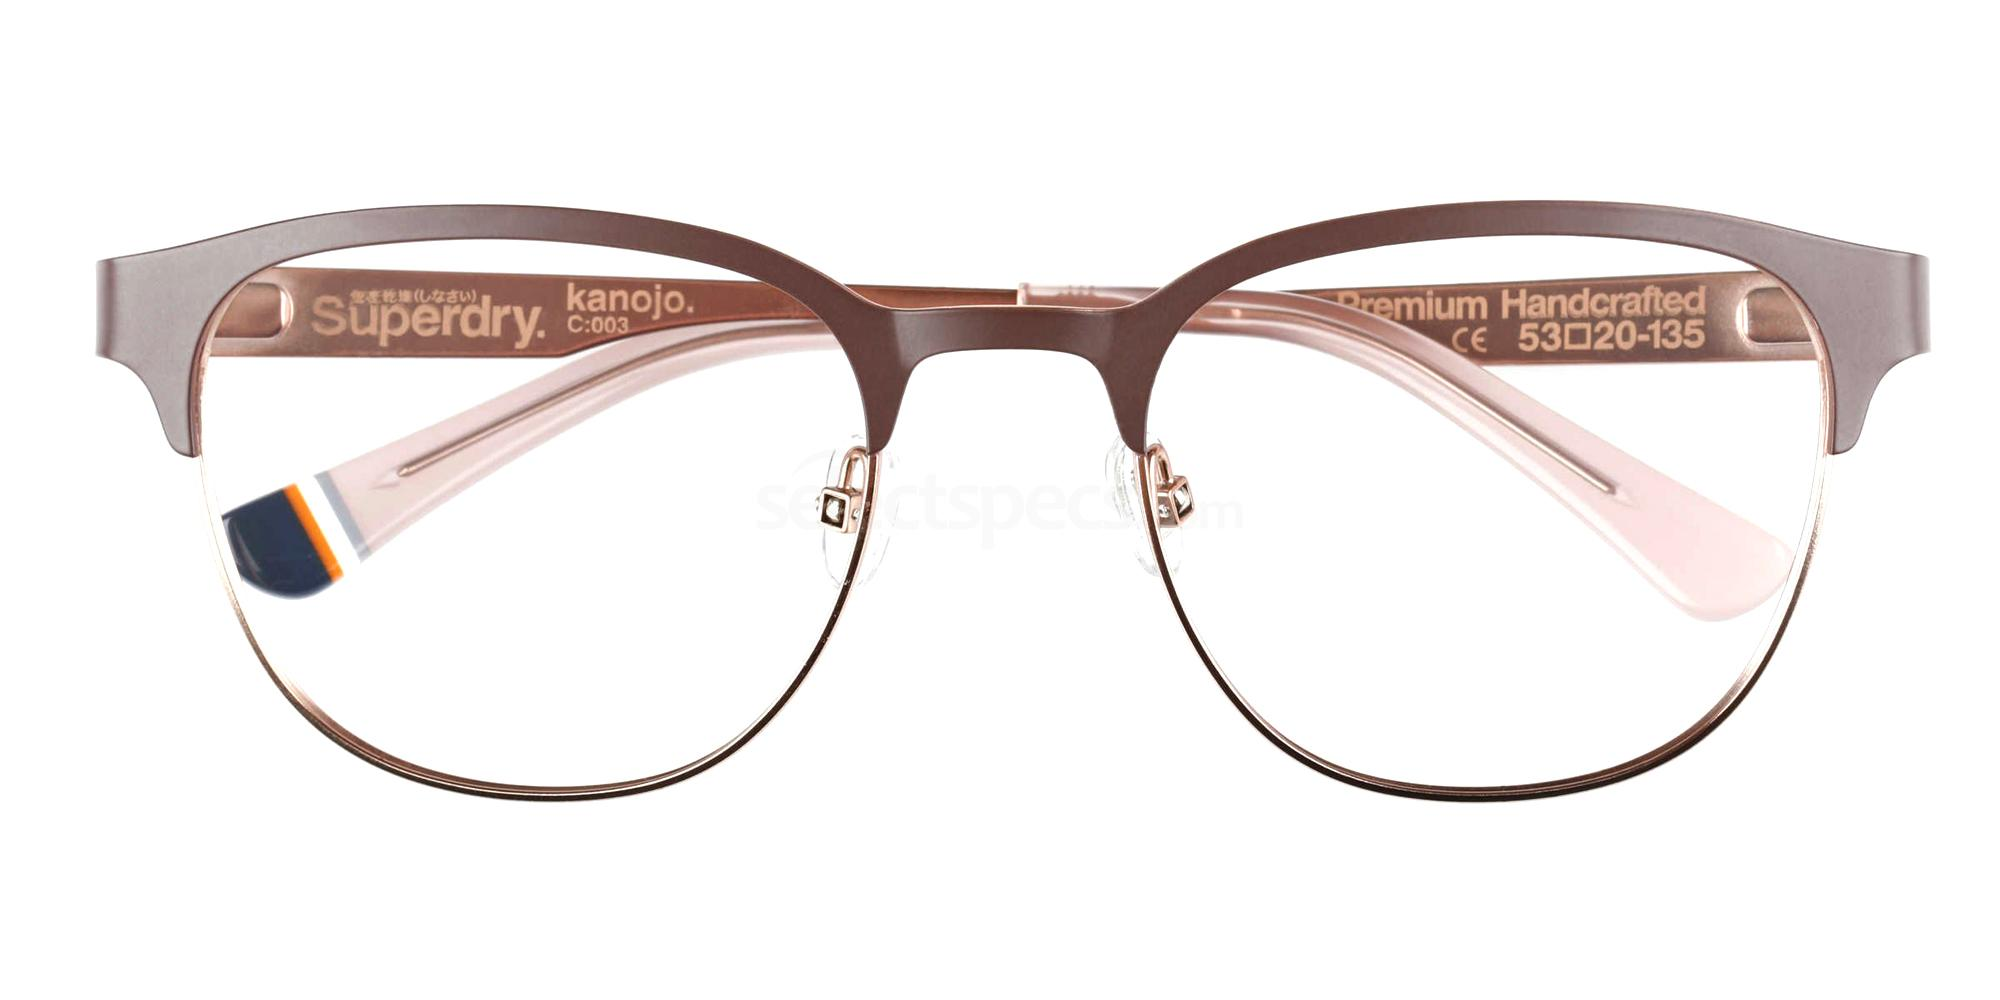 003 SDO-KANOJO Glasses, Superdry